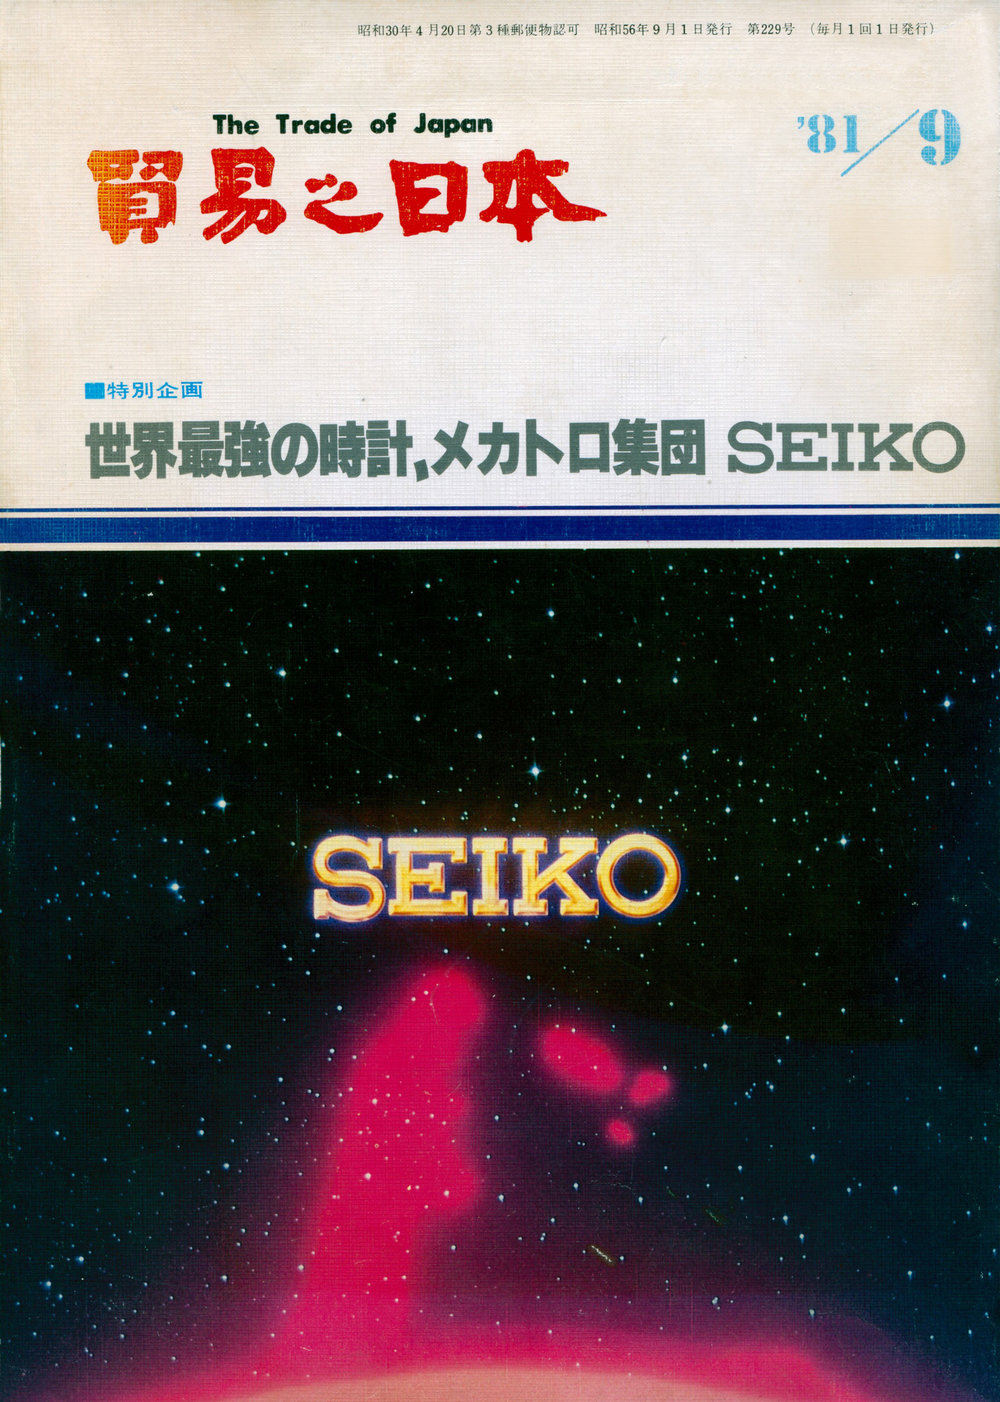 Cover- The World's Strongest Watch, Mechatronics Group Seiko